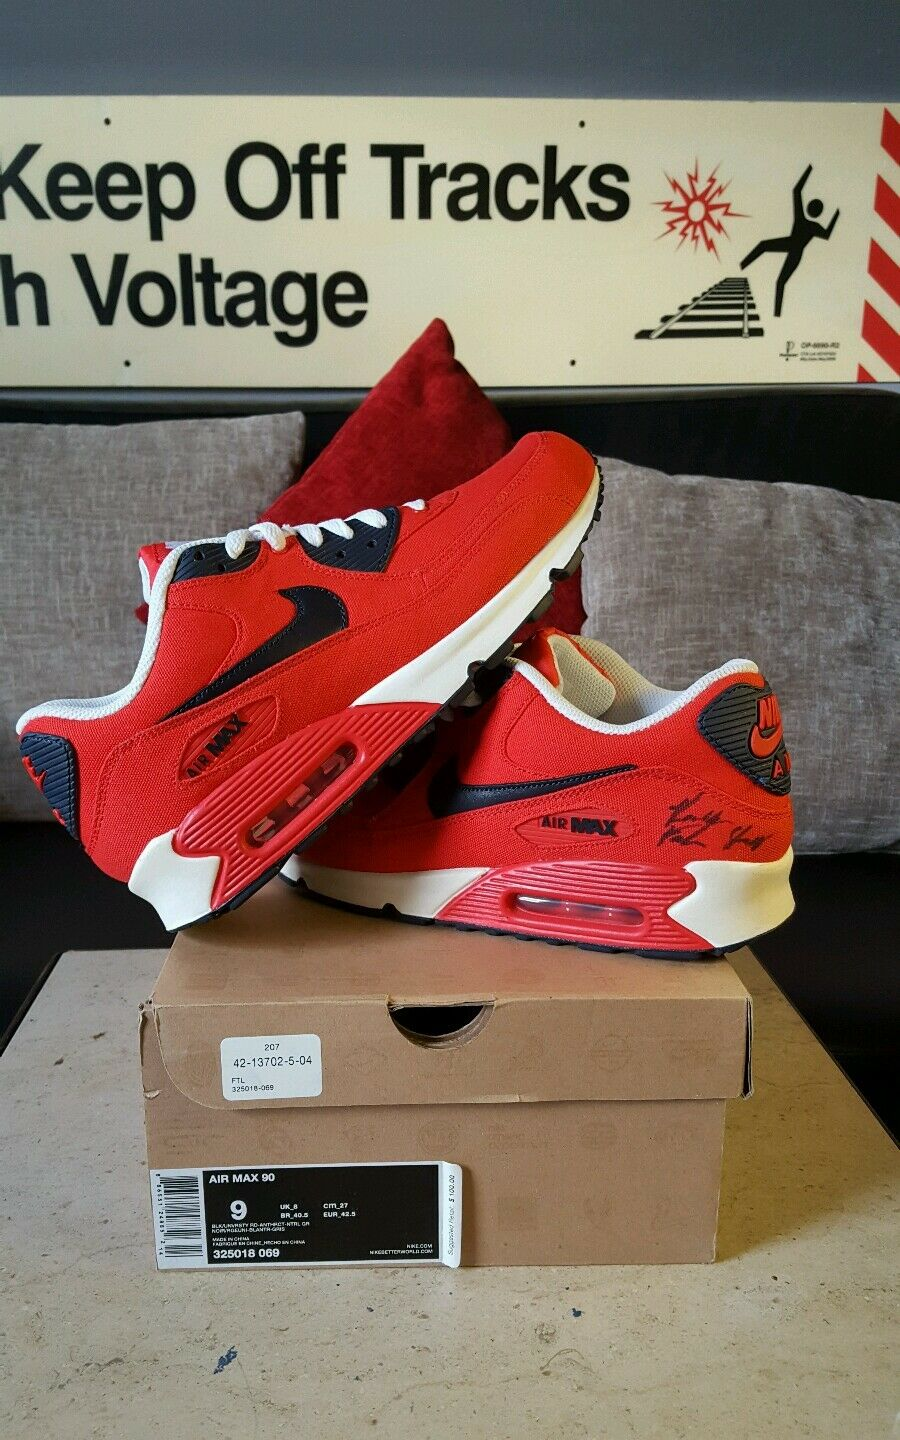 Nike Air Max 90 BLK/UNVRSTY RD sz 9 Signed By Rockie Fresh MMG Member Authentic.